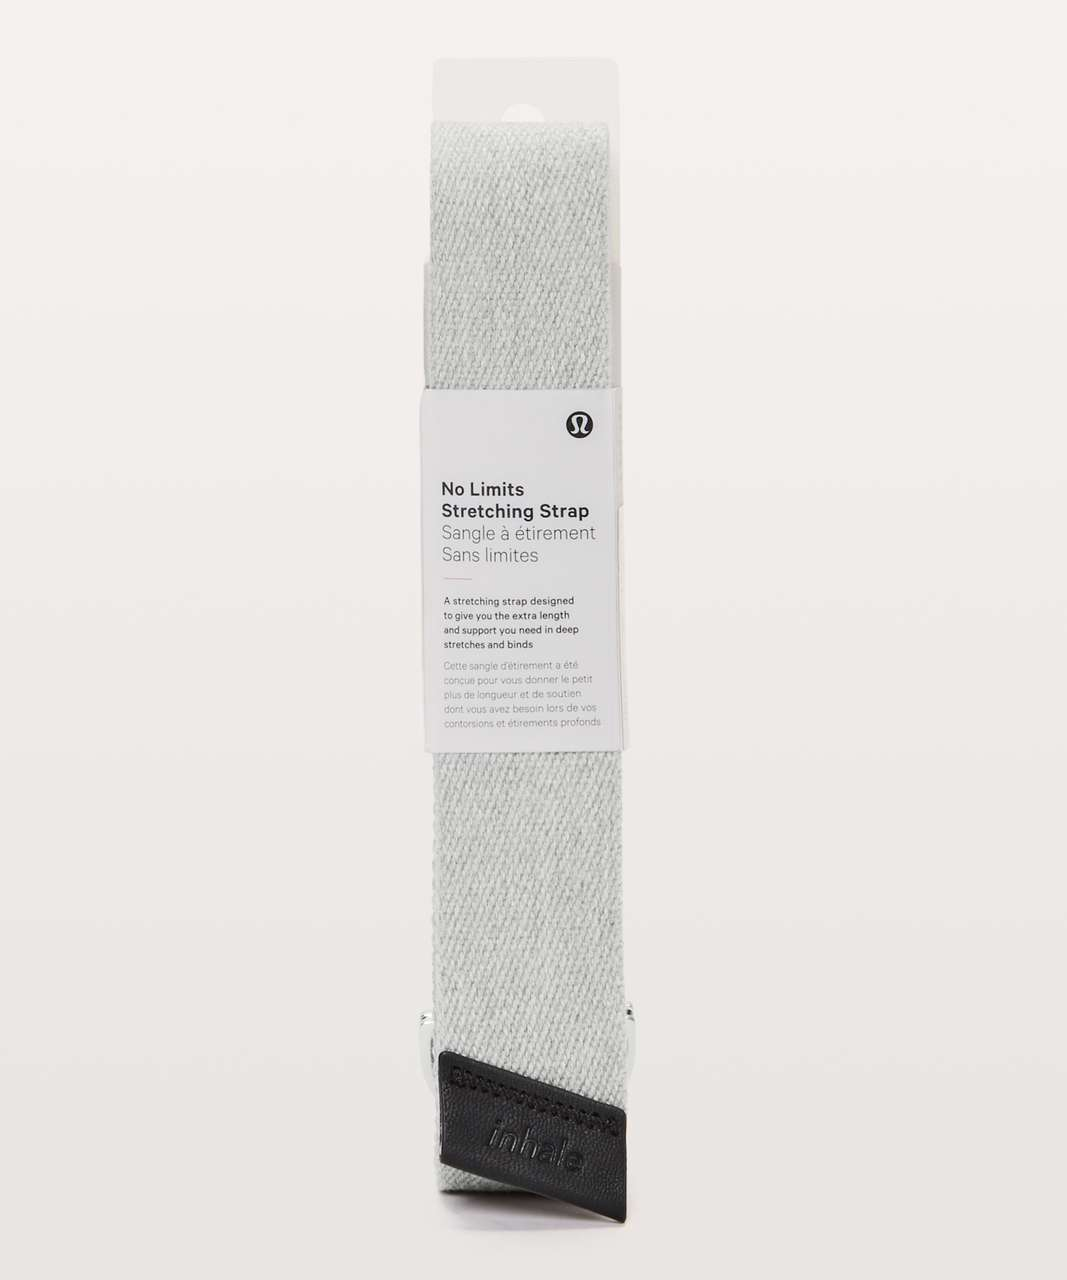 Lululemon No Limits Stretching Strap - Heathered Core Light Grey